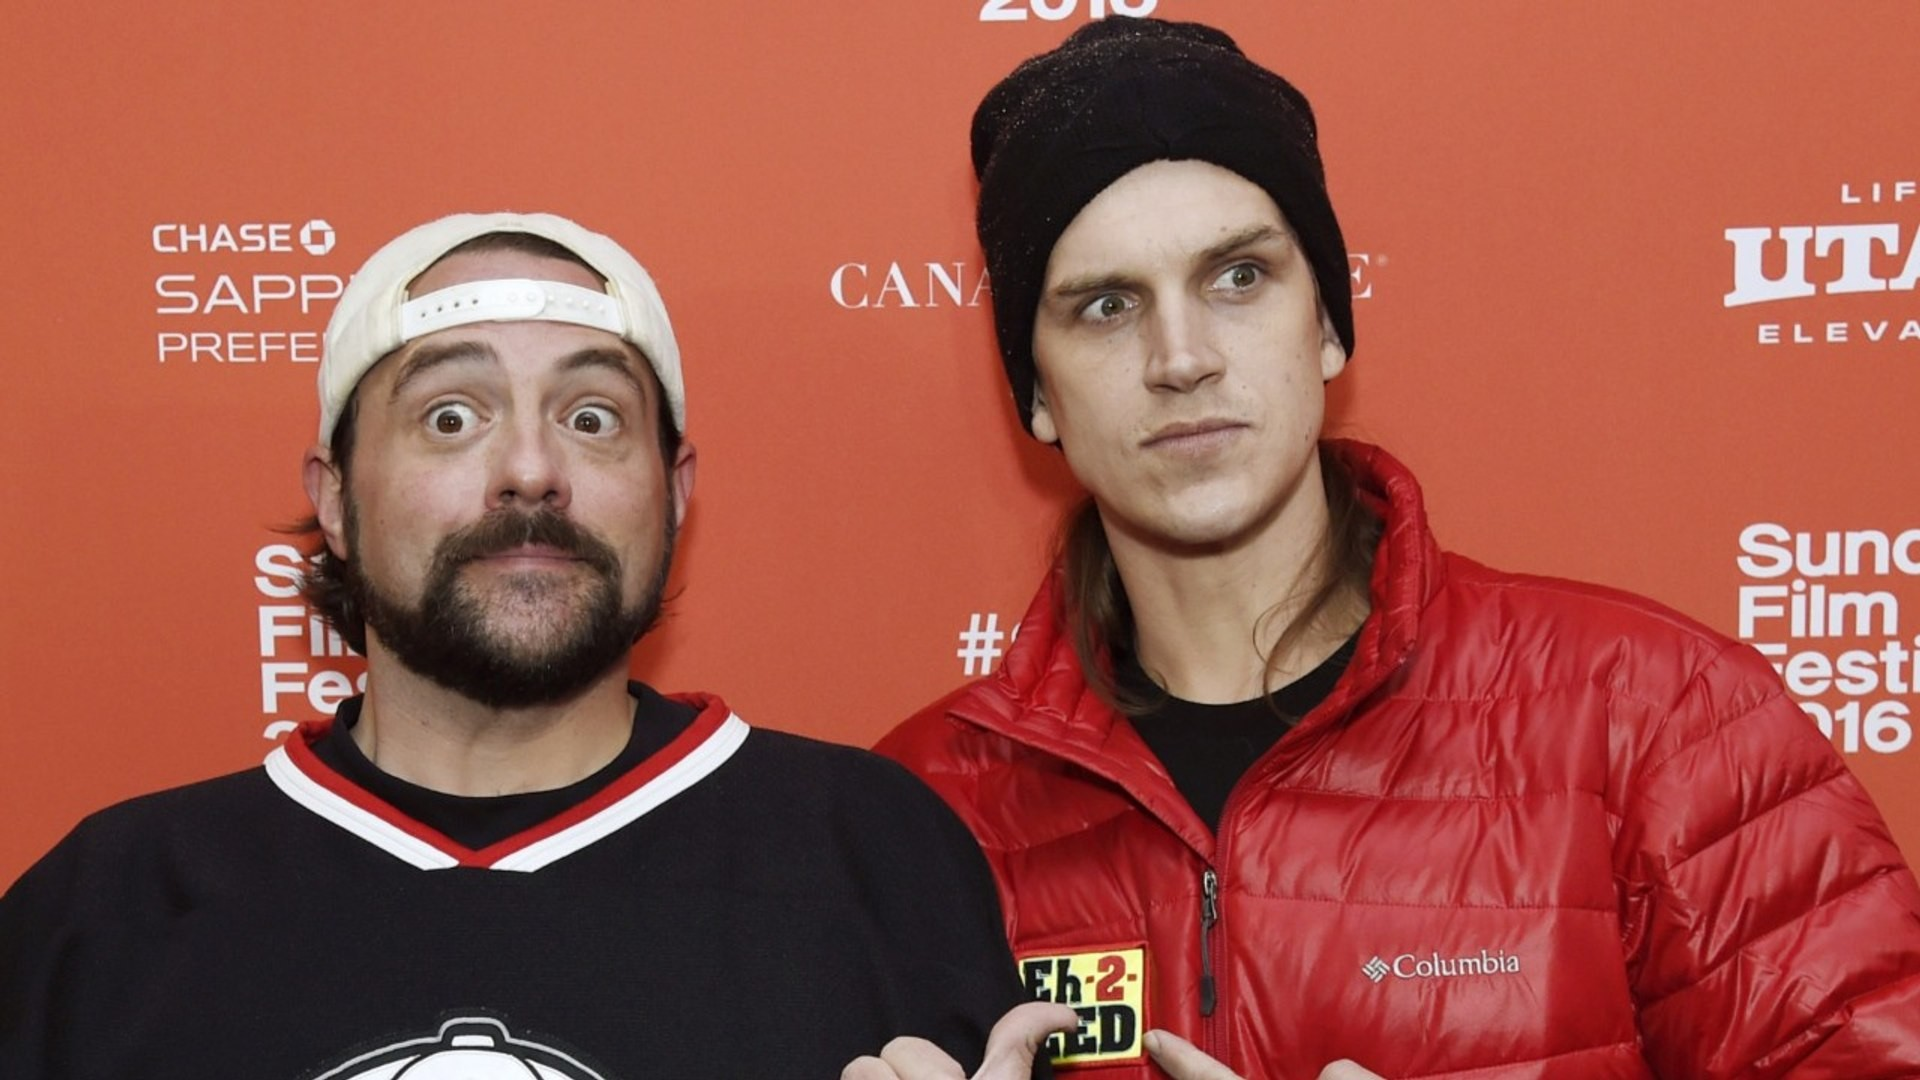 1920x1080 Upcoming Jay And Silent Bob Reboot Set To Hit Theaters Thanks To Saban Films